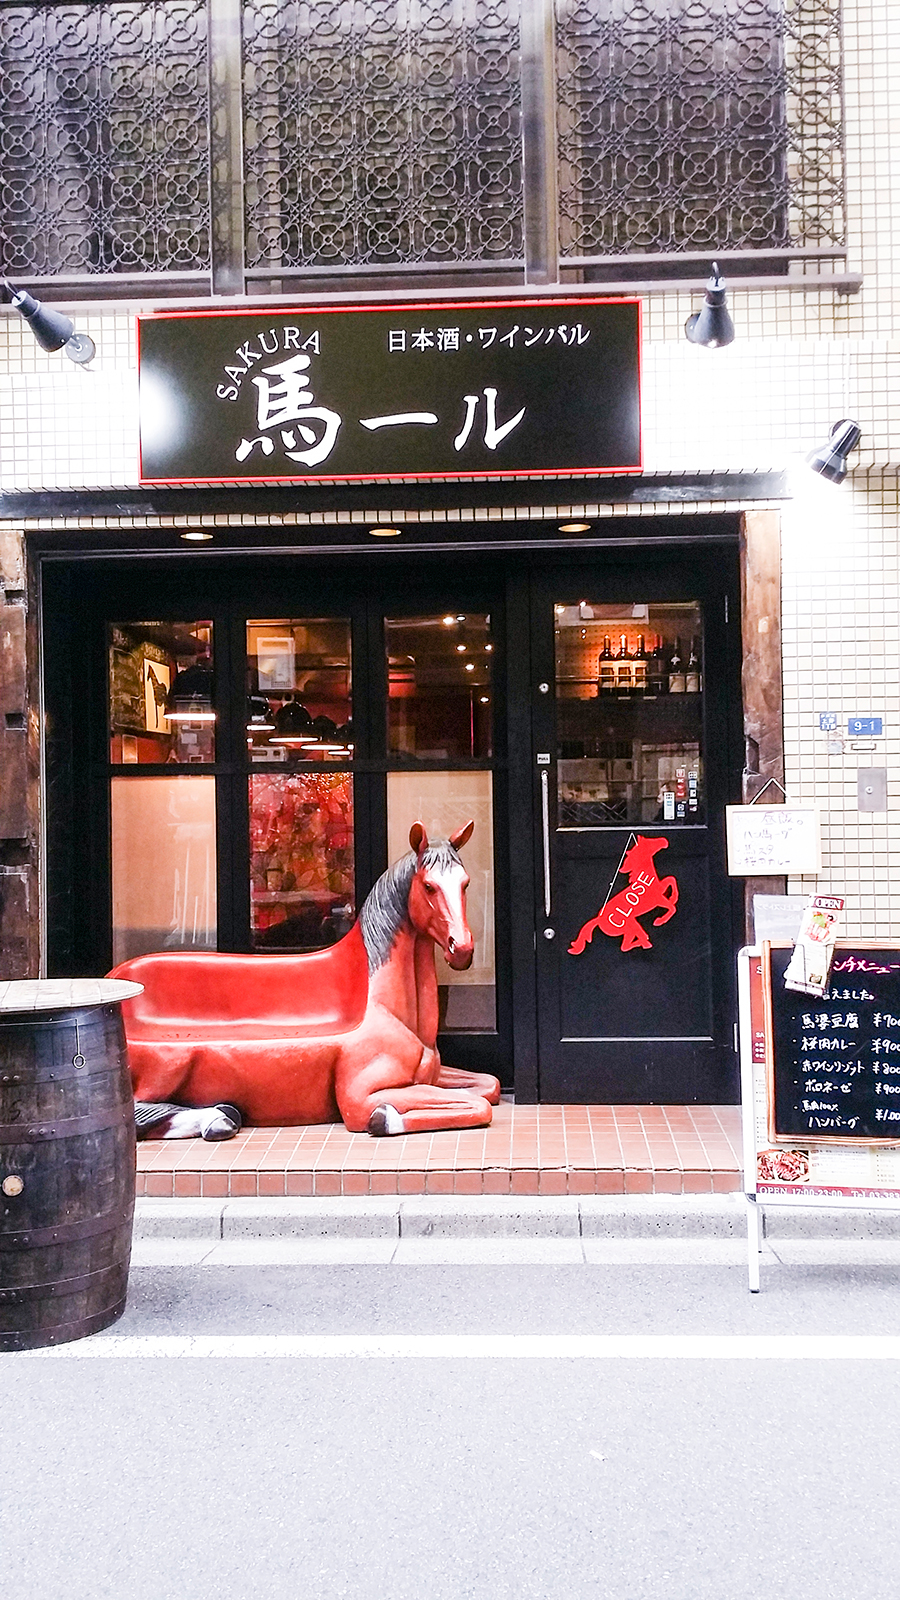 Baaru and a horse chair in Tokyo, Japan.